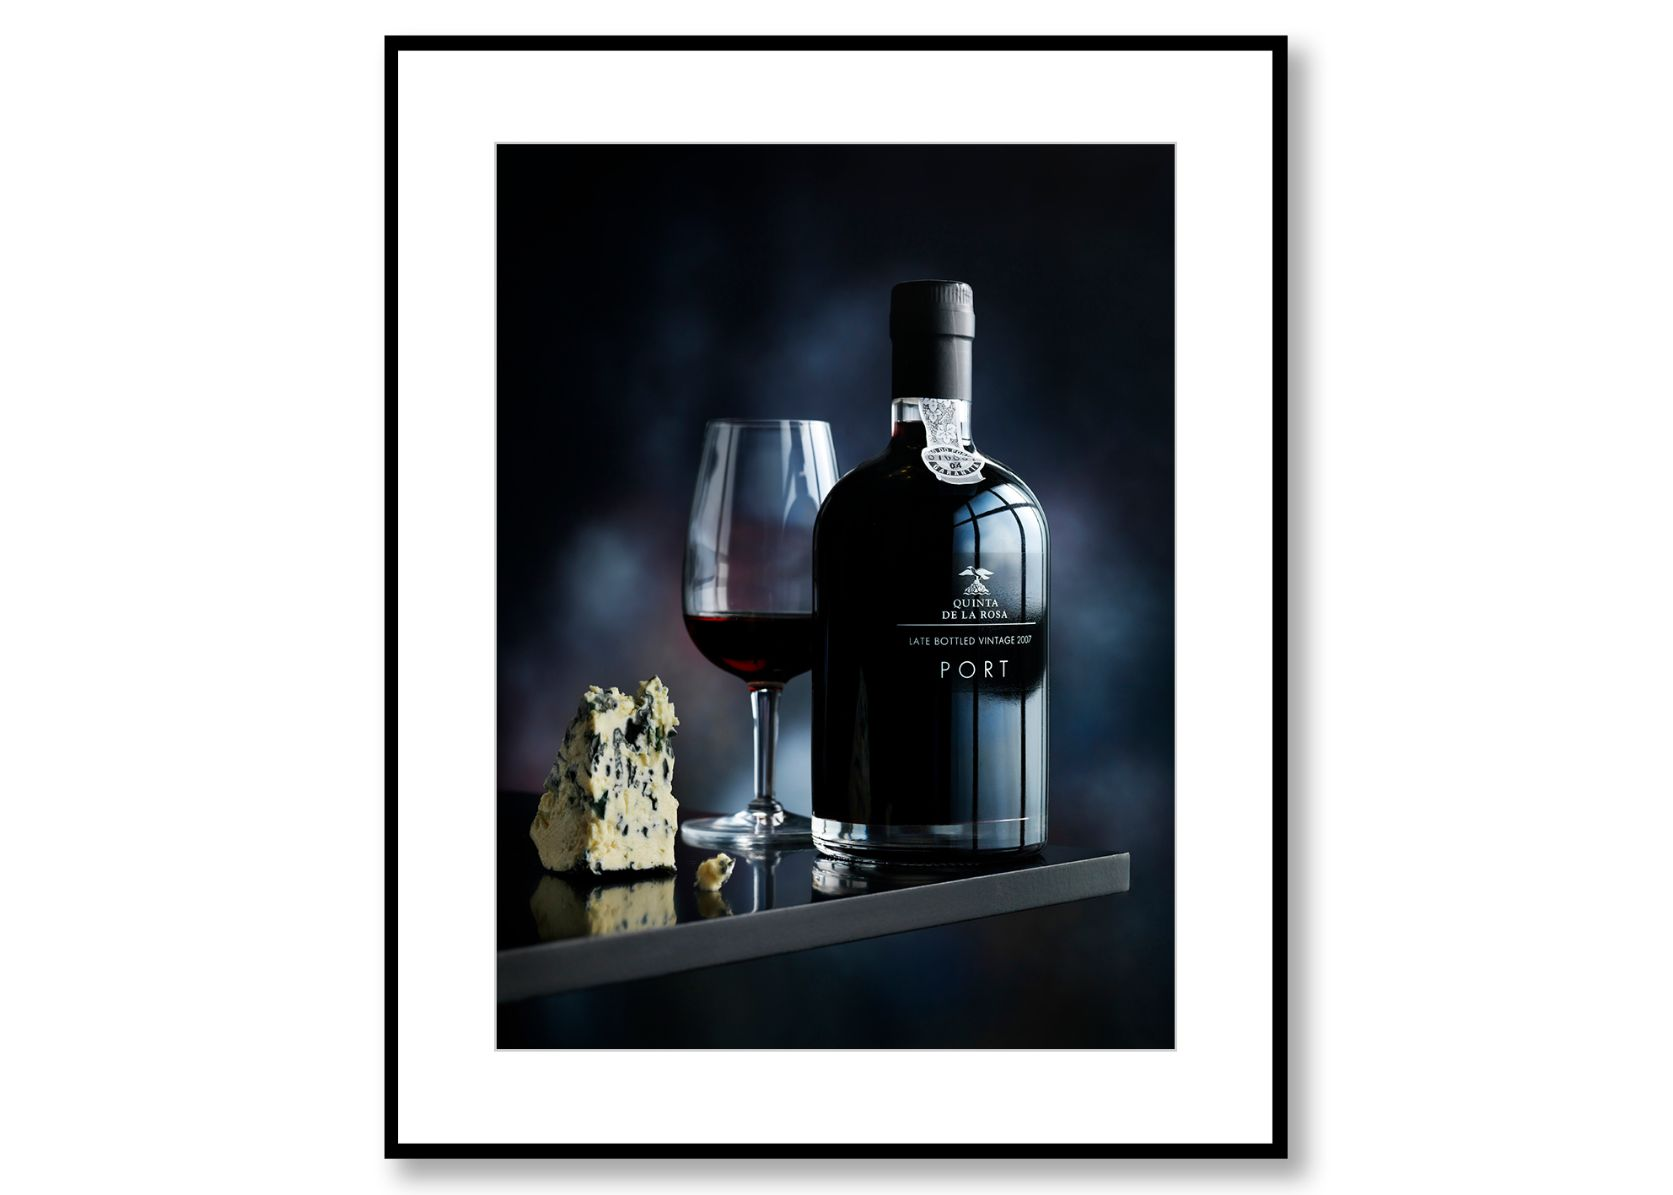 Port & Cheese. Food Art. Prints for sale. Photo by Fredrik Rege